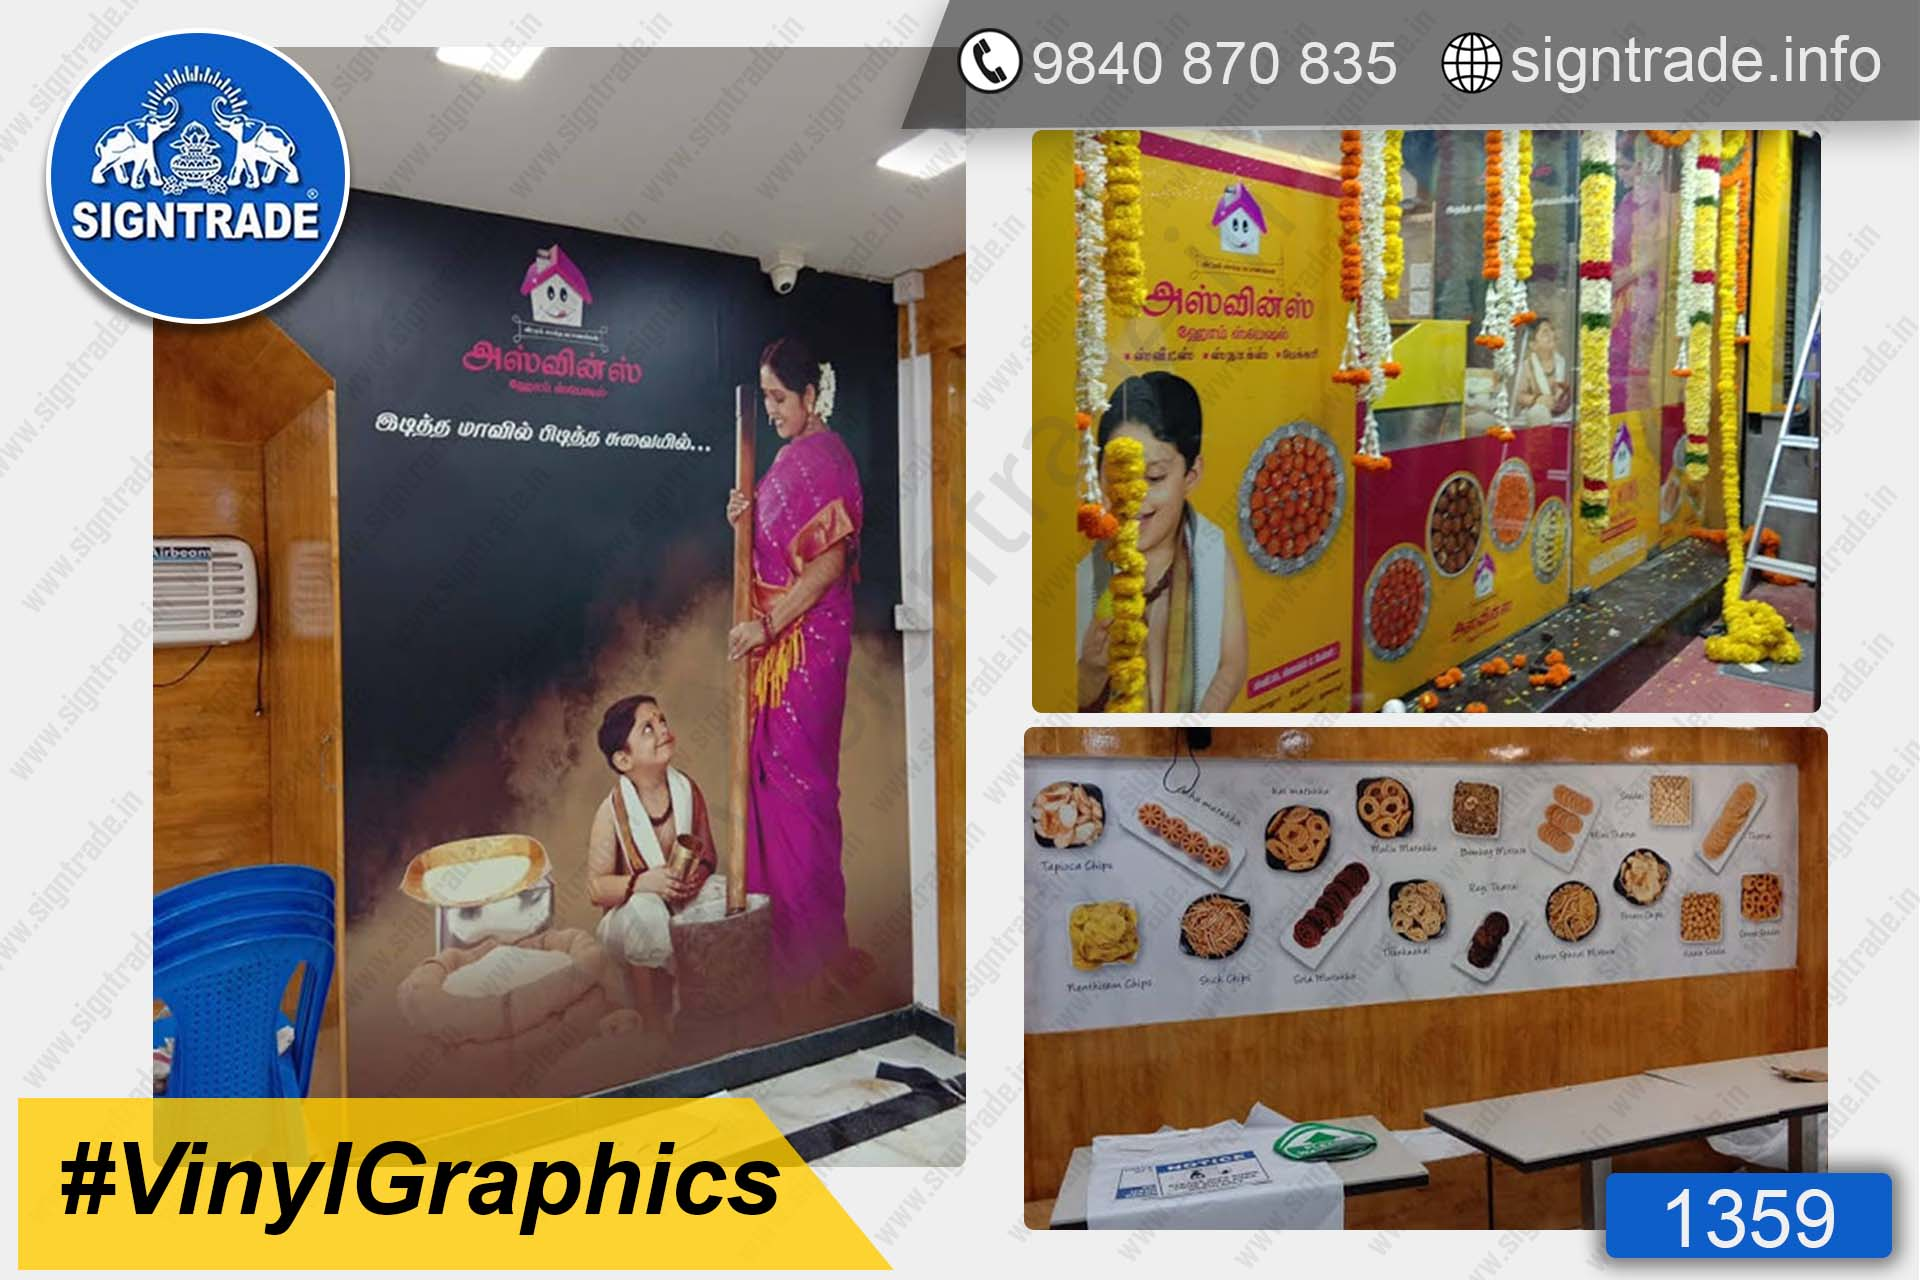 Aswin Sweets and Snacks - Chennai - Vinyl Graphics - SIGNTRADE - Custom Printed Wall Graphics in Chennai